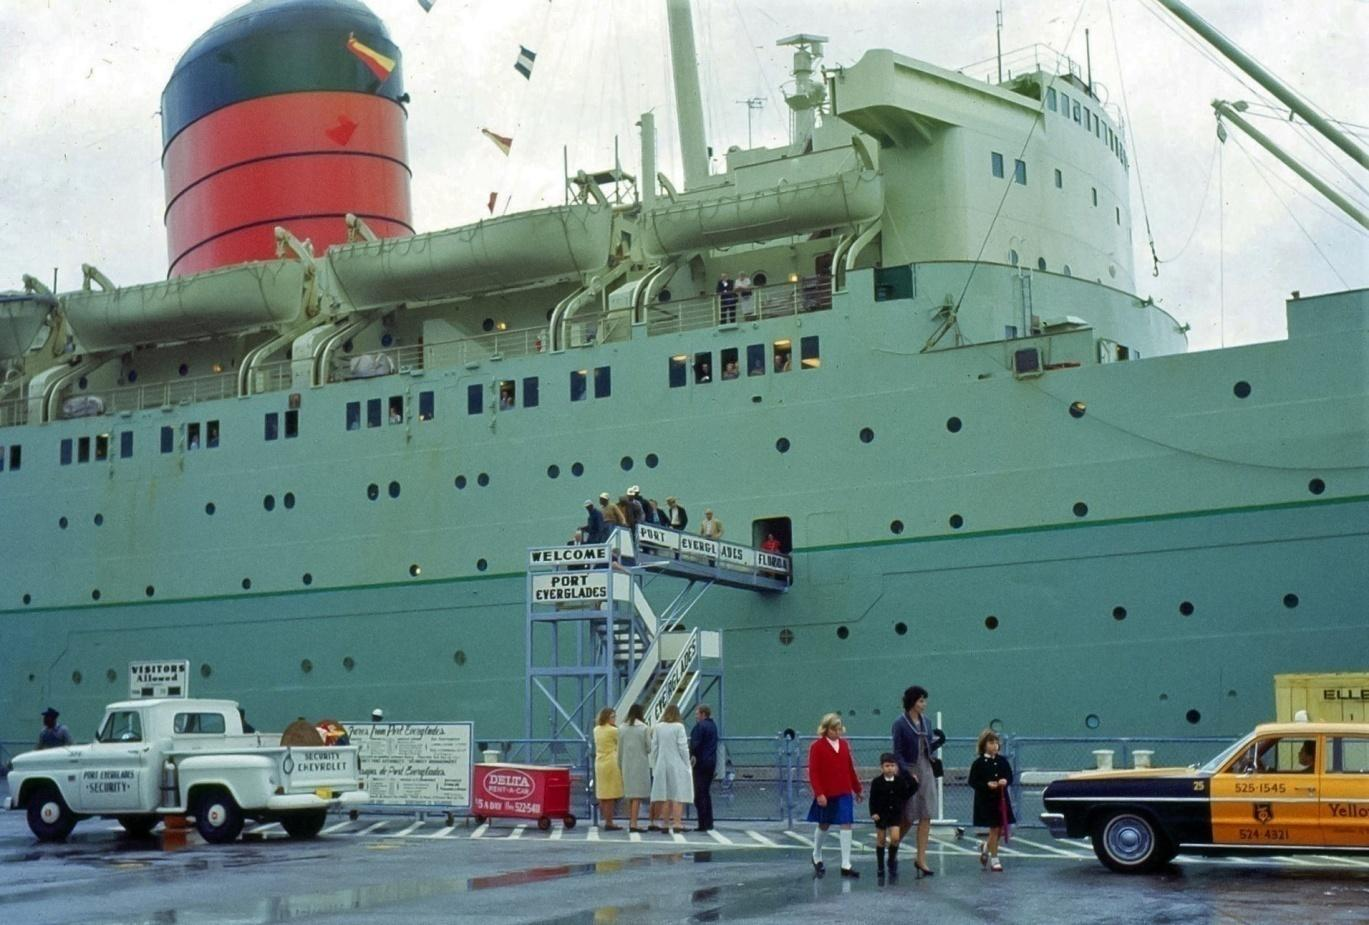 D:\Bill\Pictures\Tony87\Ships Color Done\Carmania in Port Everglades 1966.jpg